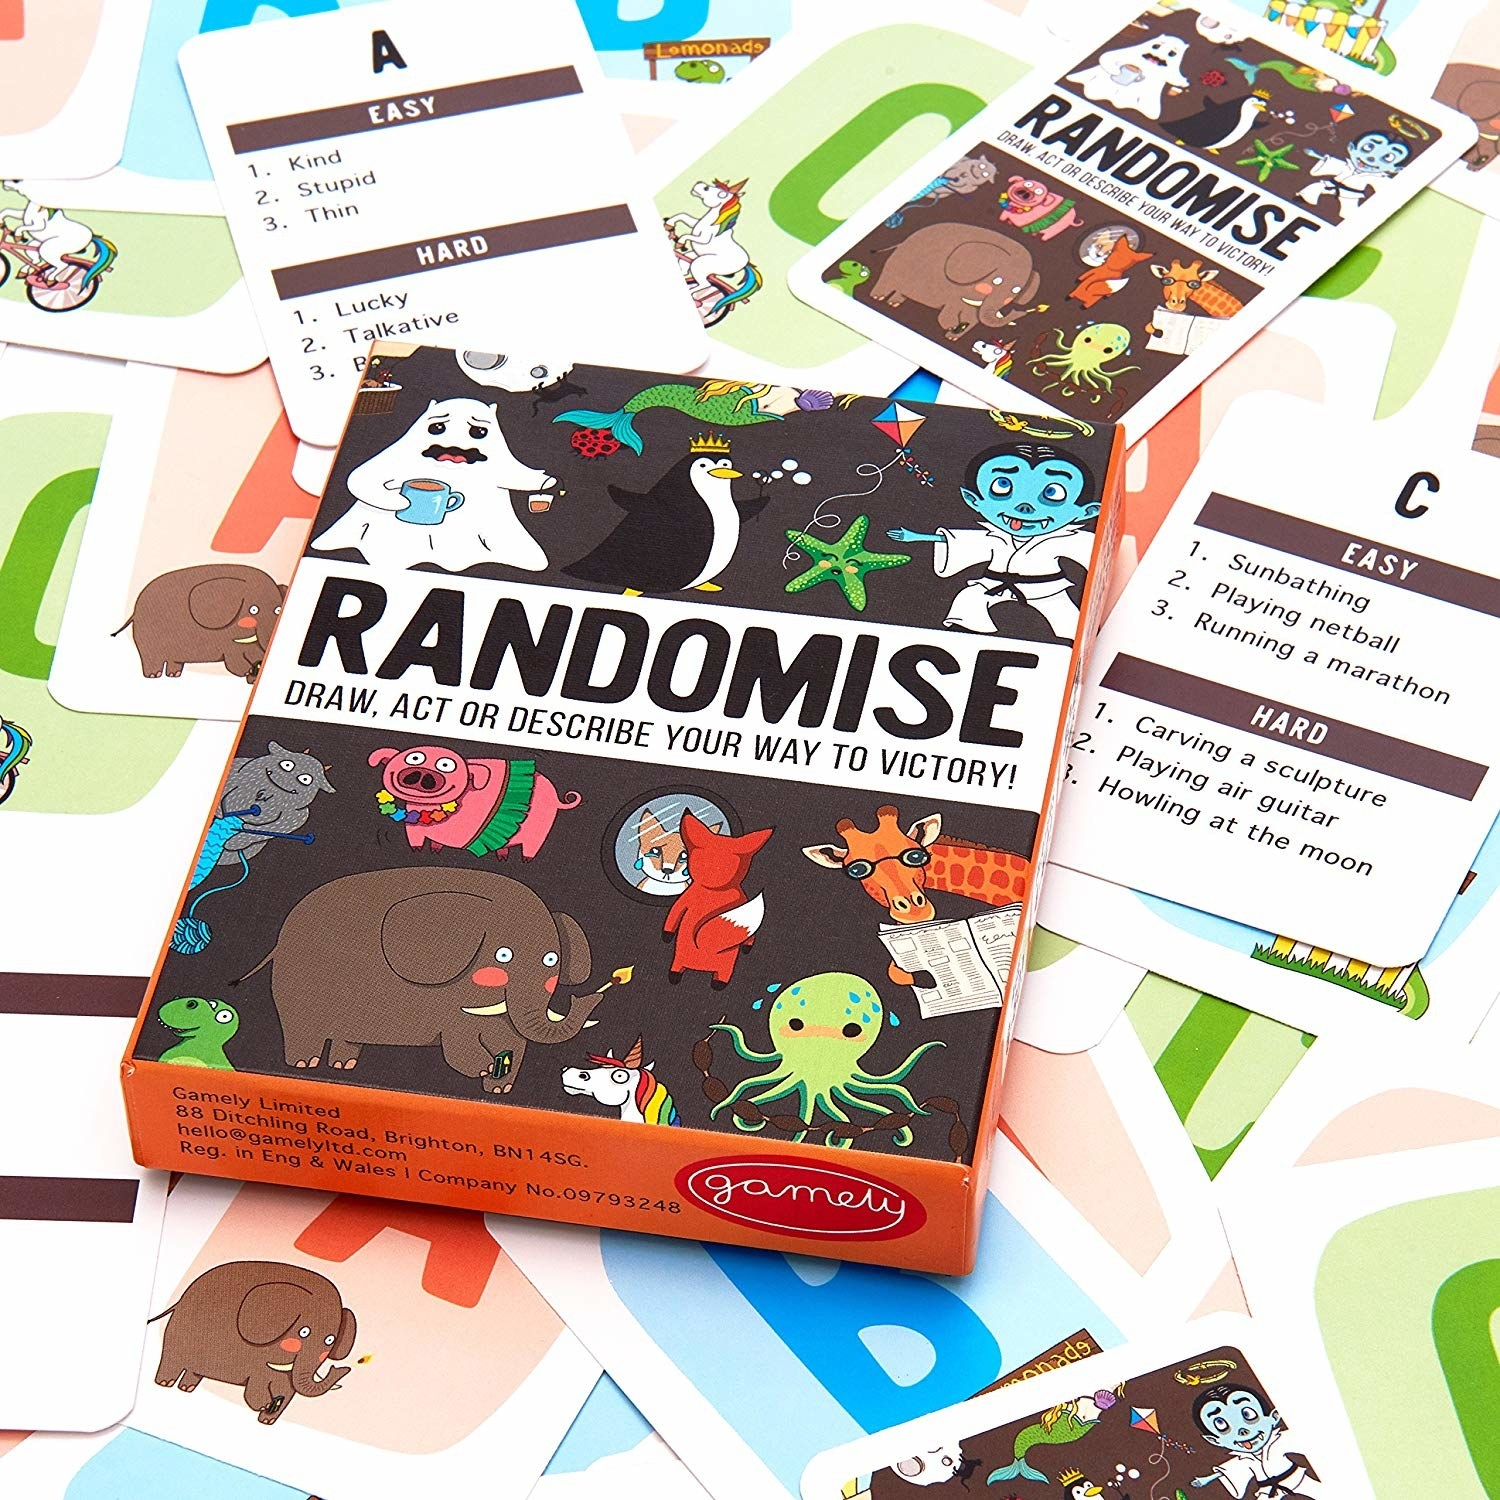 """...which is one of the many options you can pick up. This game has easy and hard modes on each card, adorable illustrations, and guarantees endless hours of fun. Promising review: """"I bought this to play with my family on New Year's Eve and OMG, it was so much fun! We had such a good time playing and trying to guess what the other person was trying to draw, act, or describe. Lots of laughs and happiness! I just regret not buying it sooner."""" —BunnyGet it from Amazon for $14.99."""